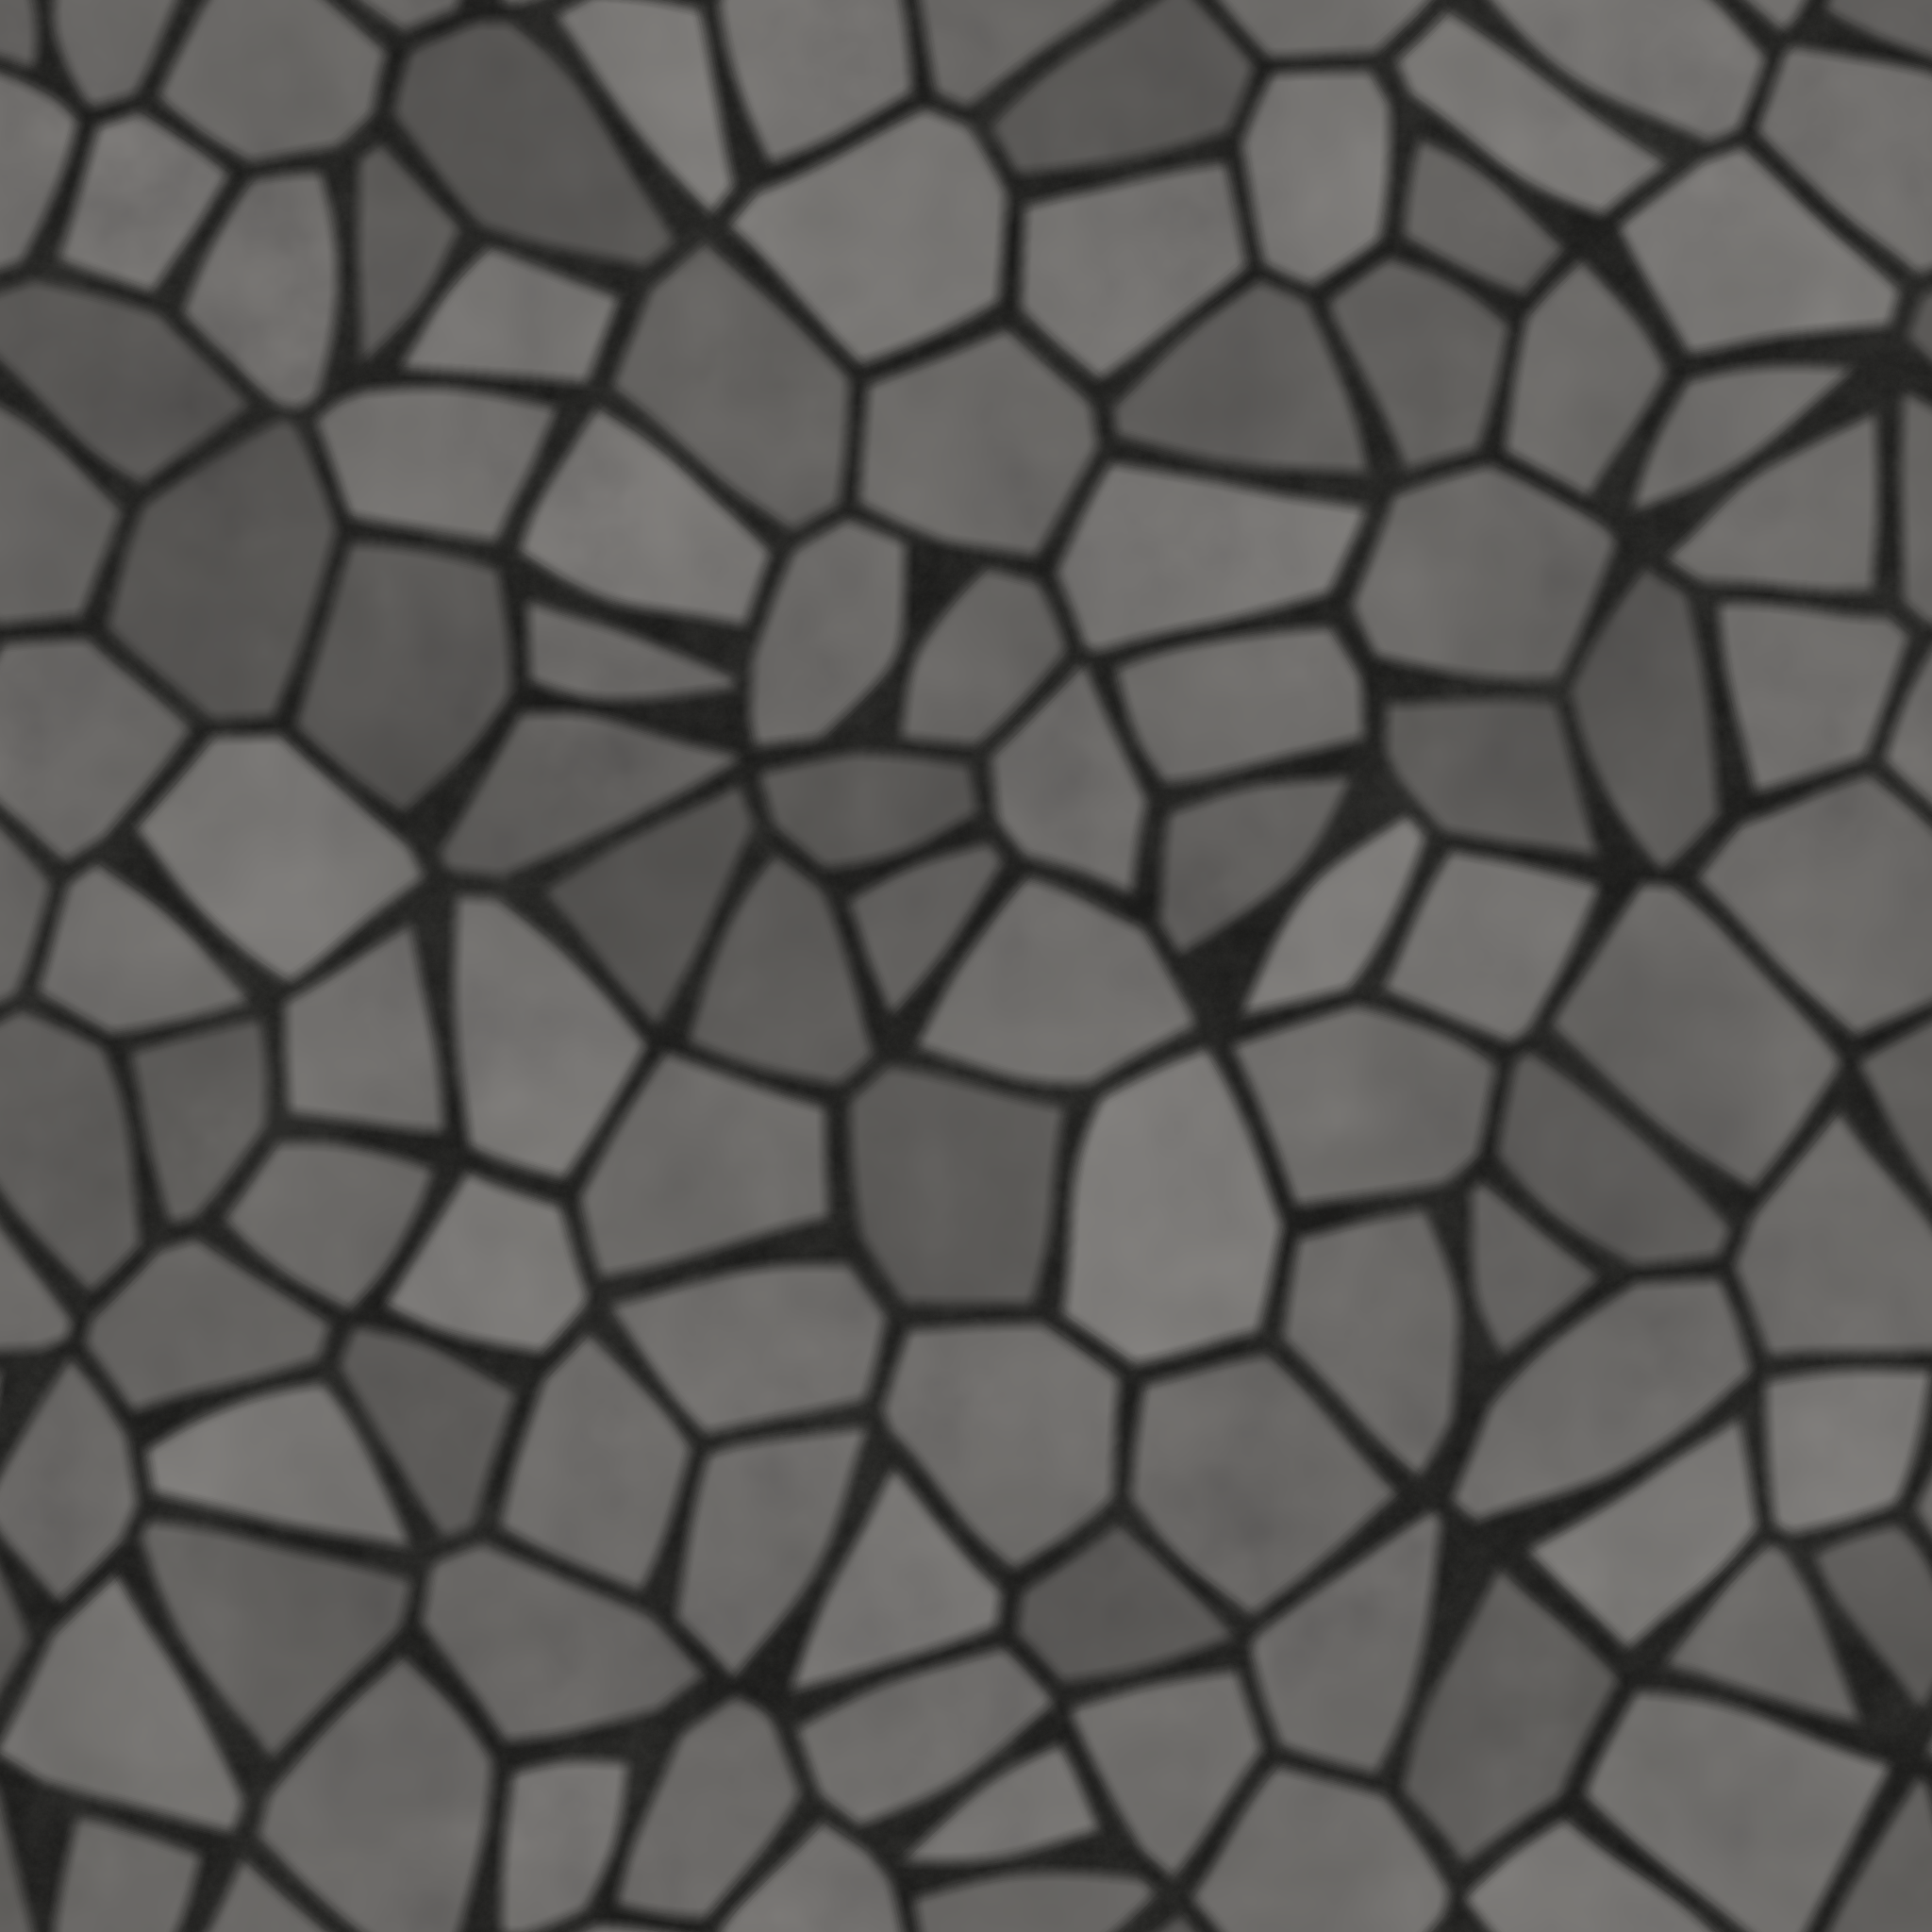 Seamless Cobblestone Texture - diffuse.png | OpenGameArt.org